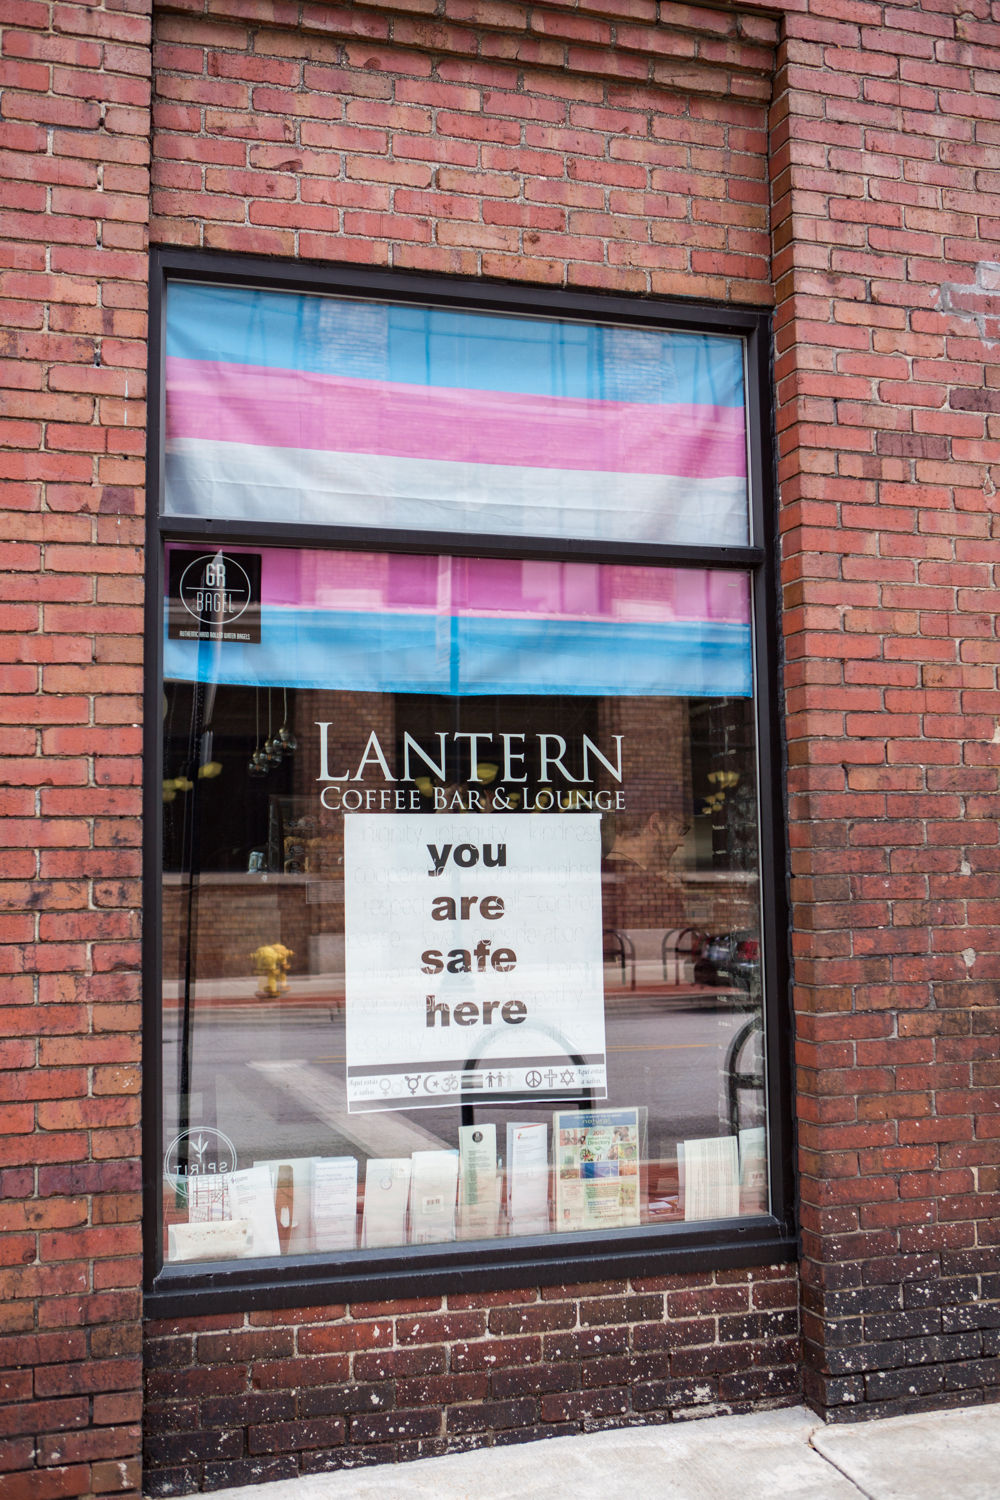 Trans Flag flown @ Lantern Coffee